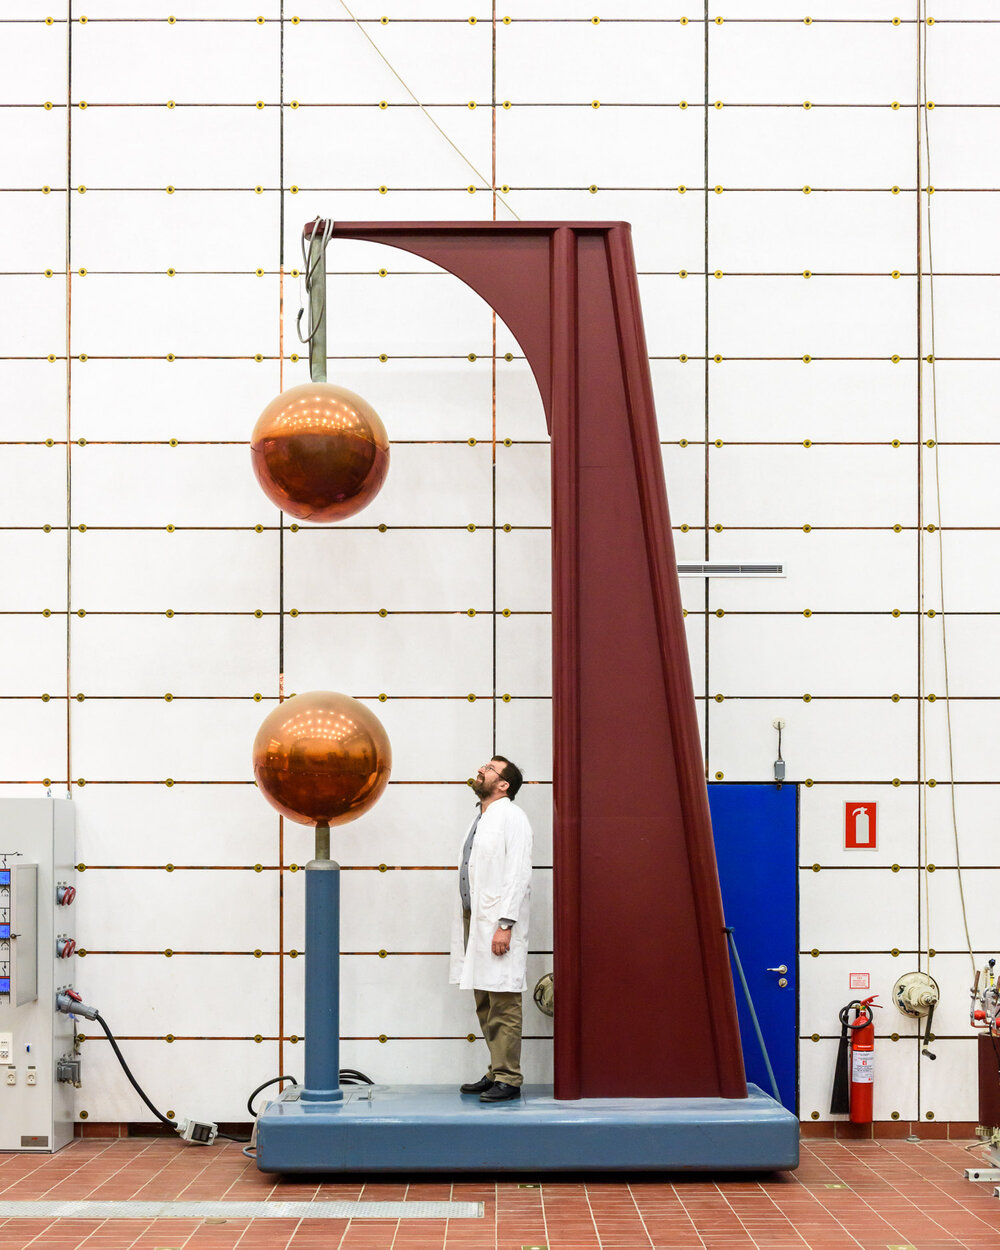 Sphere Gap at The High Voltage Laboratory at the Technical University of Denmark